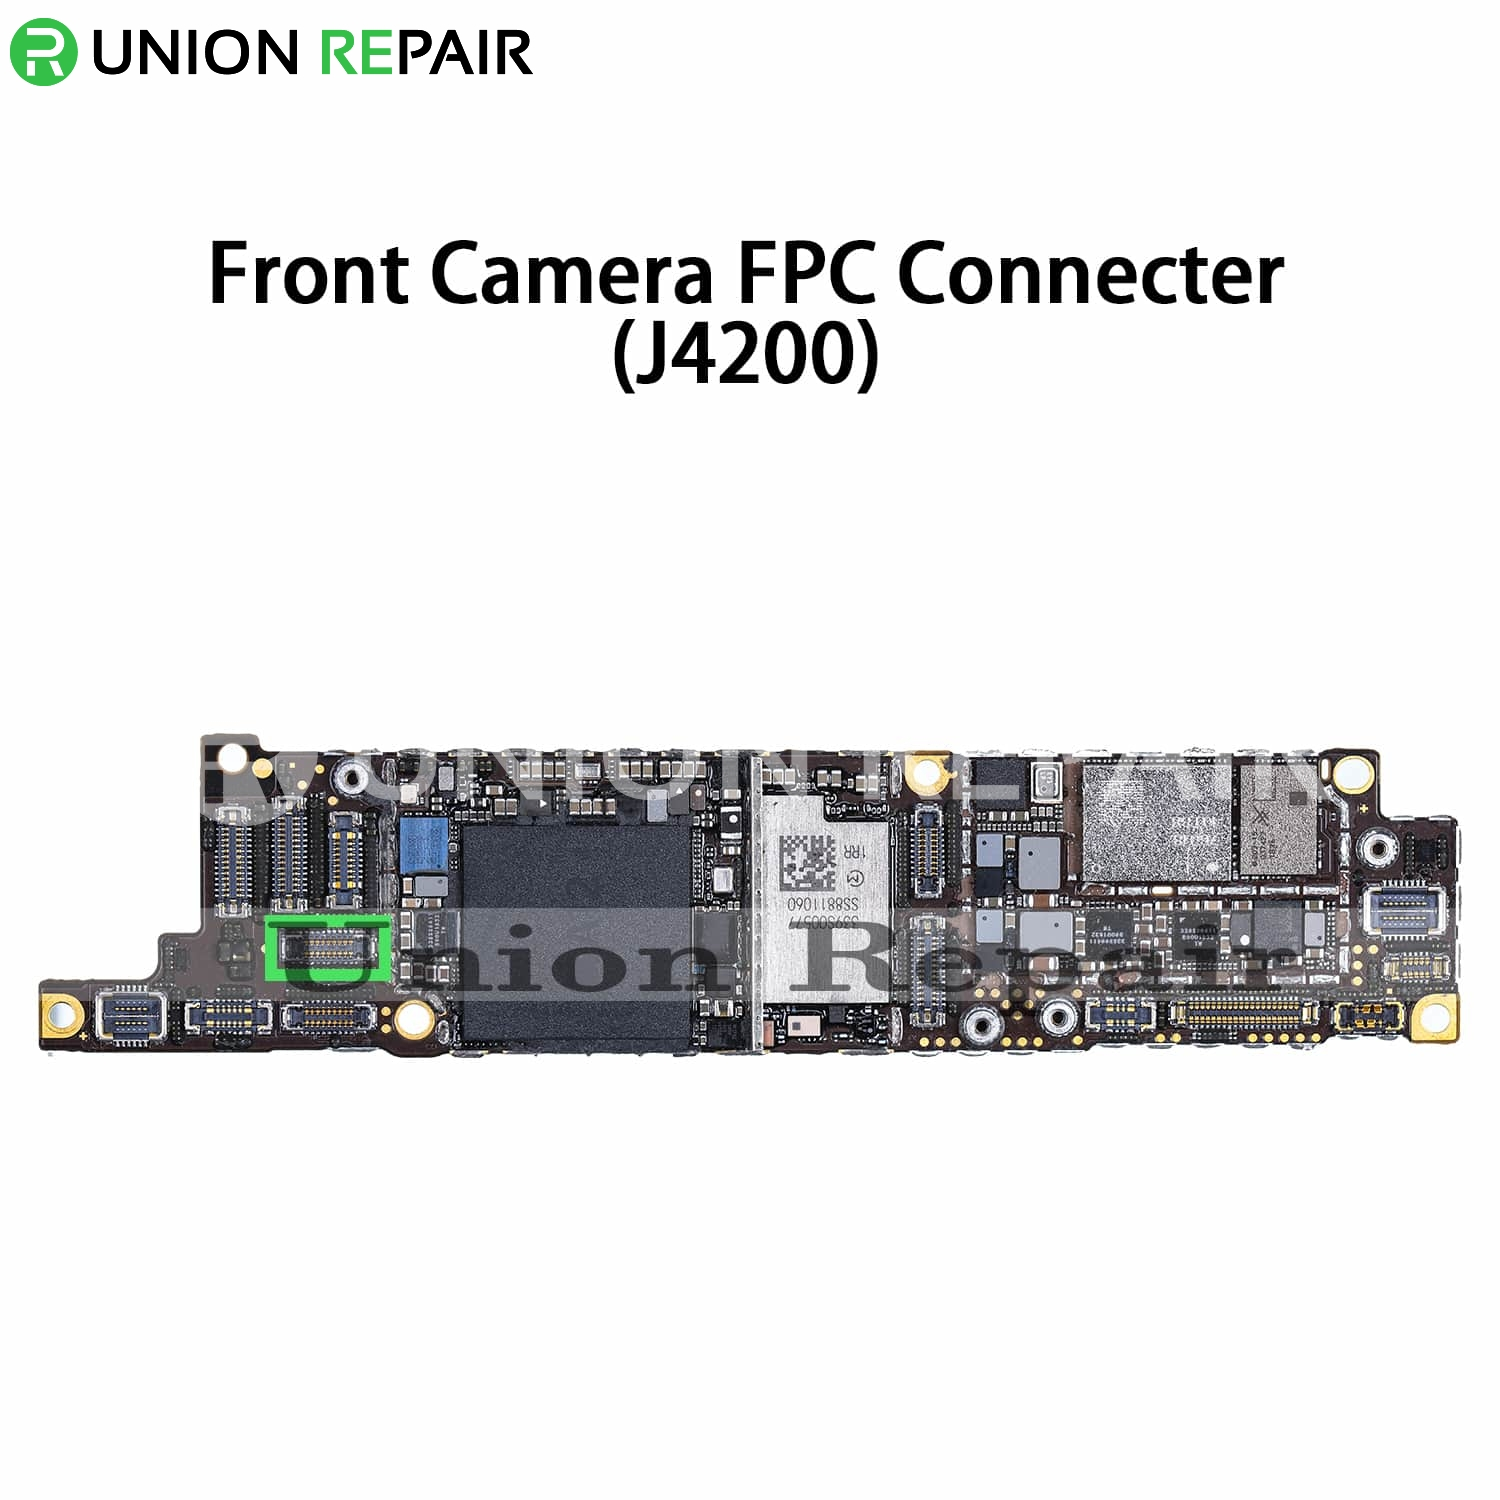 Replacement for iPhone XR Front Camera Connector Port Onboard